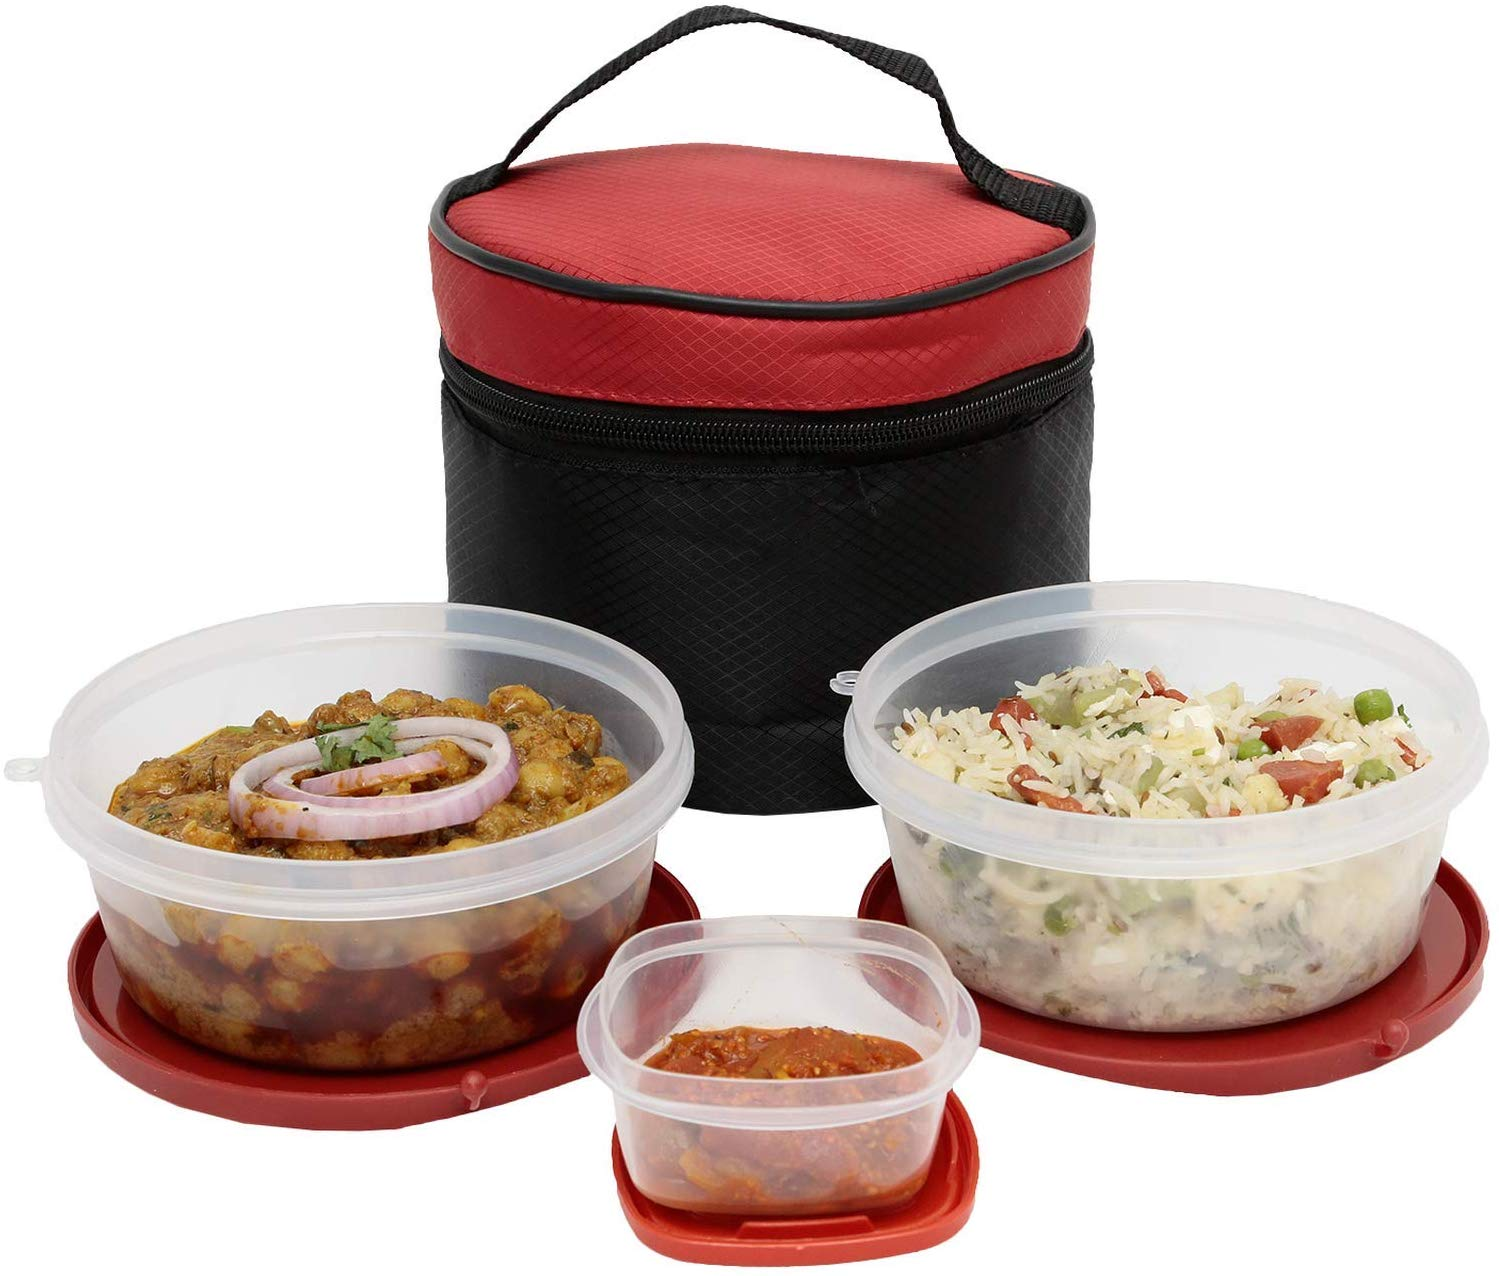 SimpArte Flexi Lid Lunch Box, 3-Pieces, Red (Patterned Black Bag)